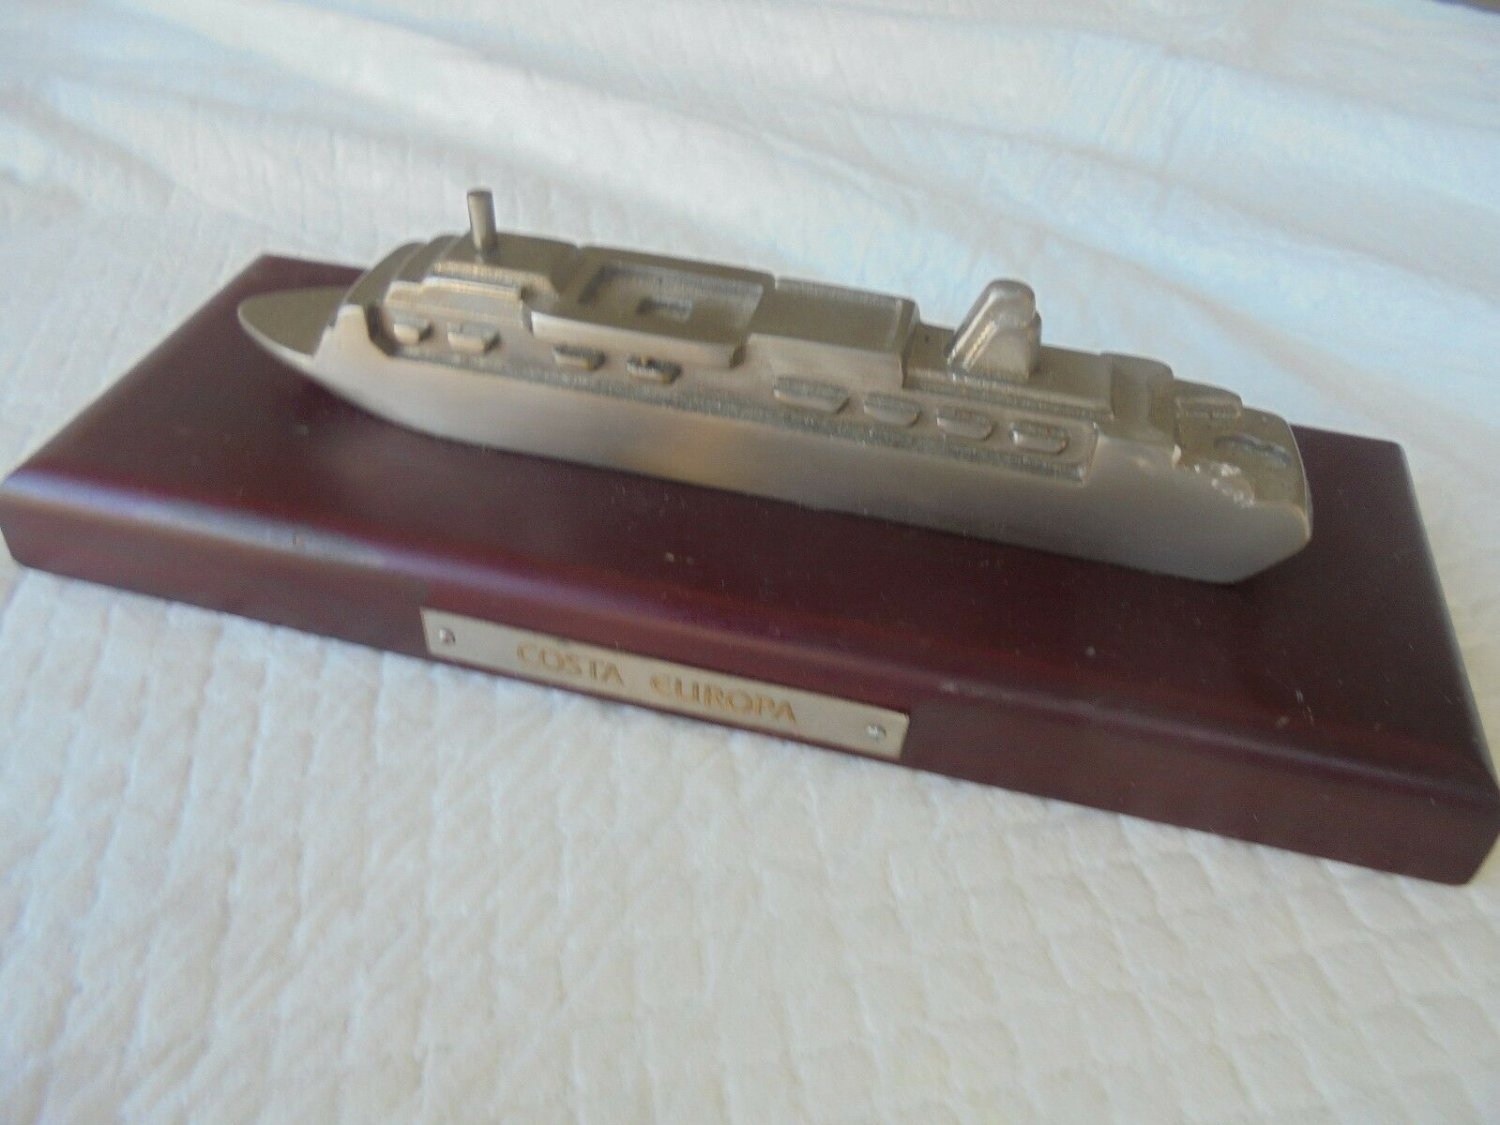 MODEL of the cruise ship COSTA EUROPA in metal and wood Original